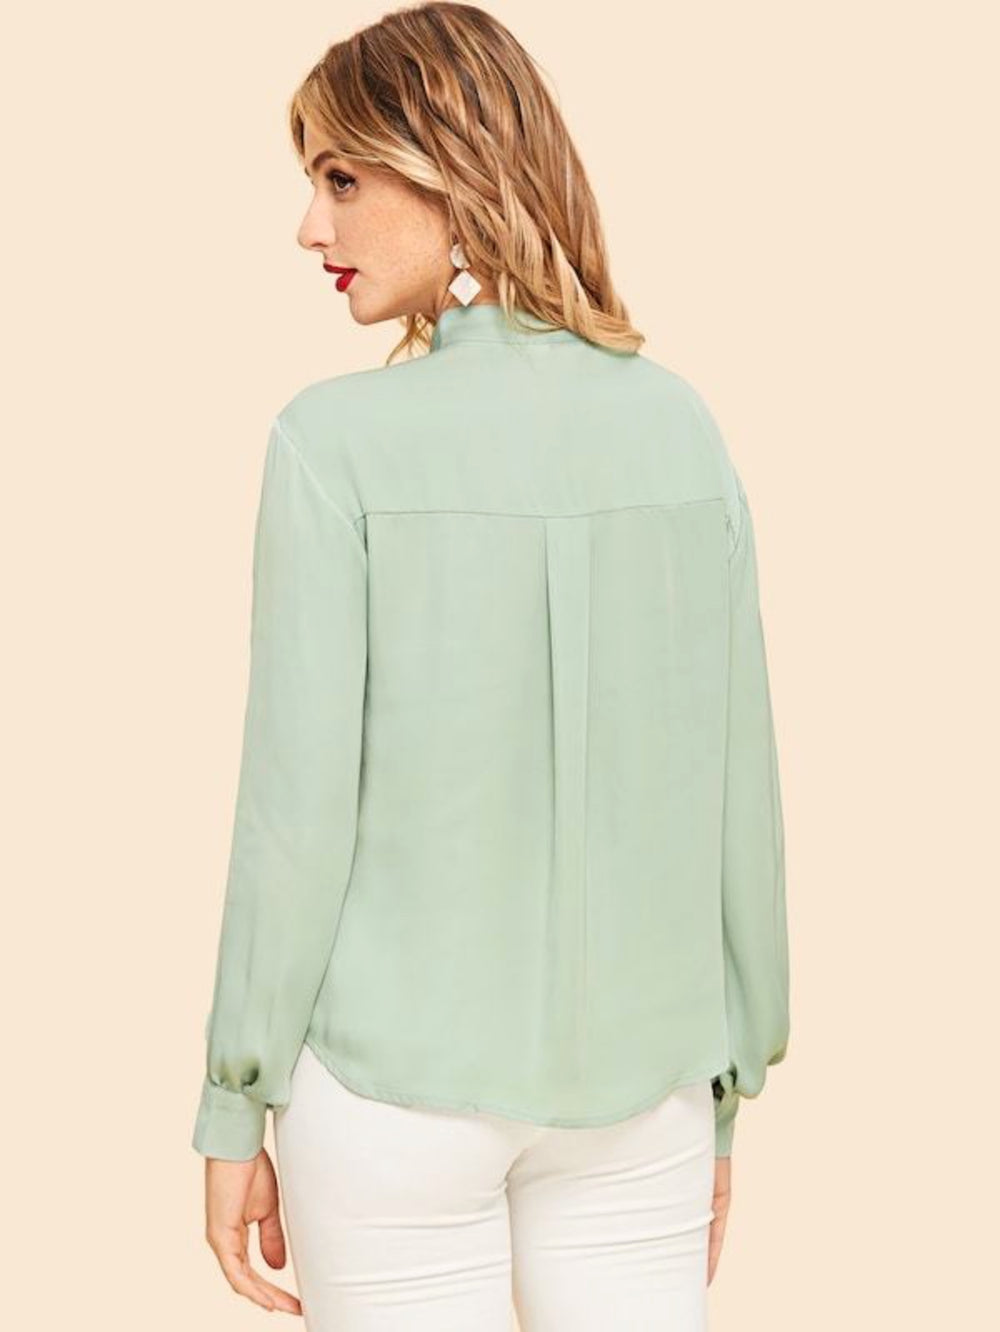 Fuddy-Duddy Casual Full Sleeve Solid Women's Light Green Top